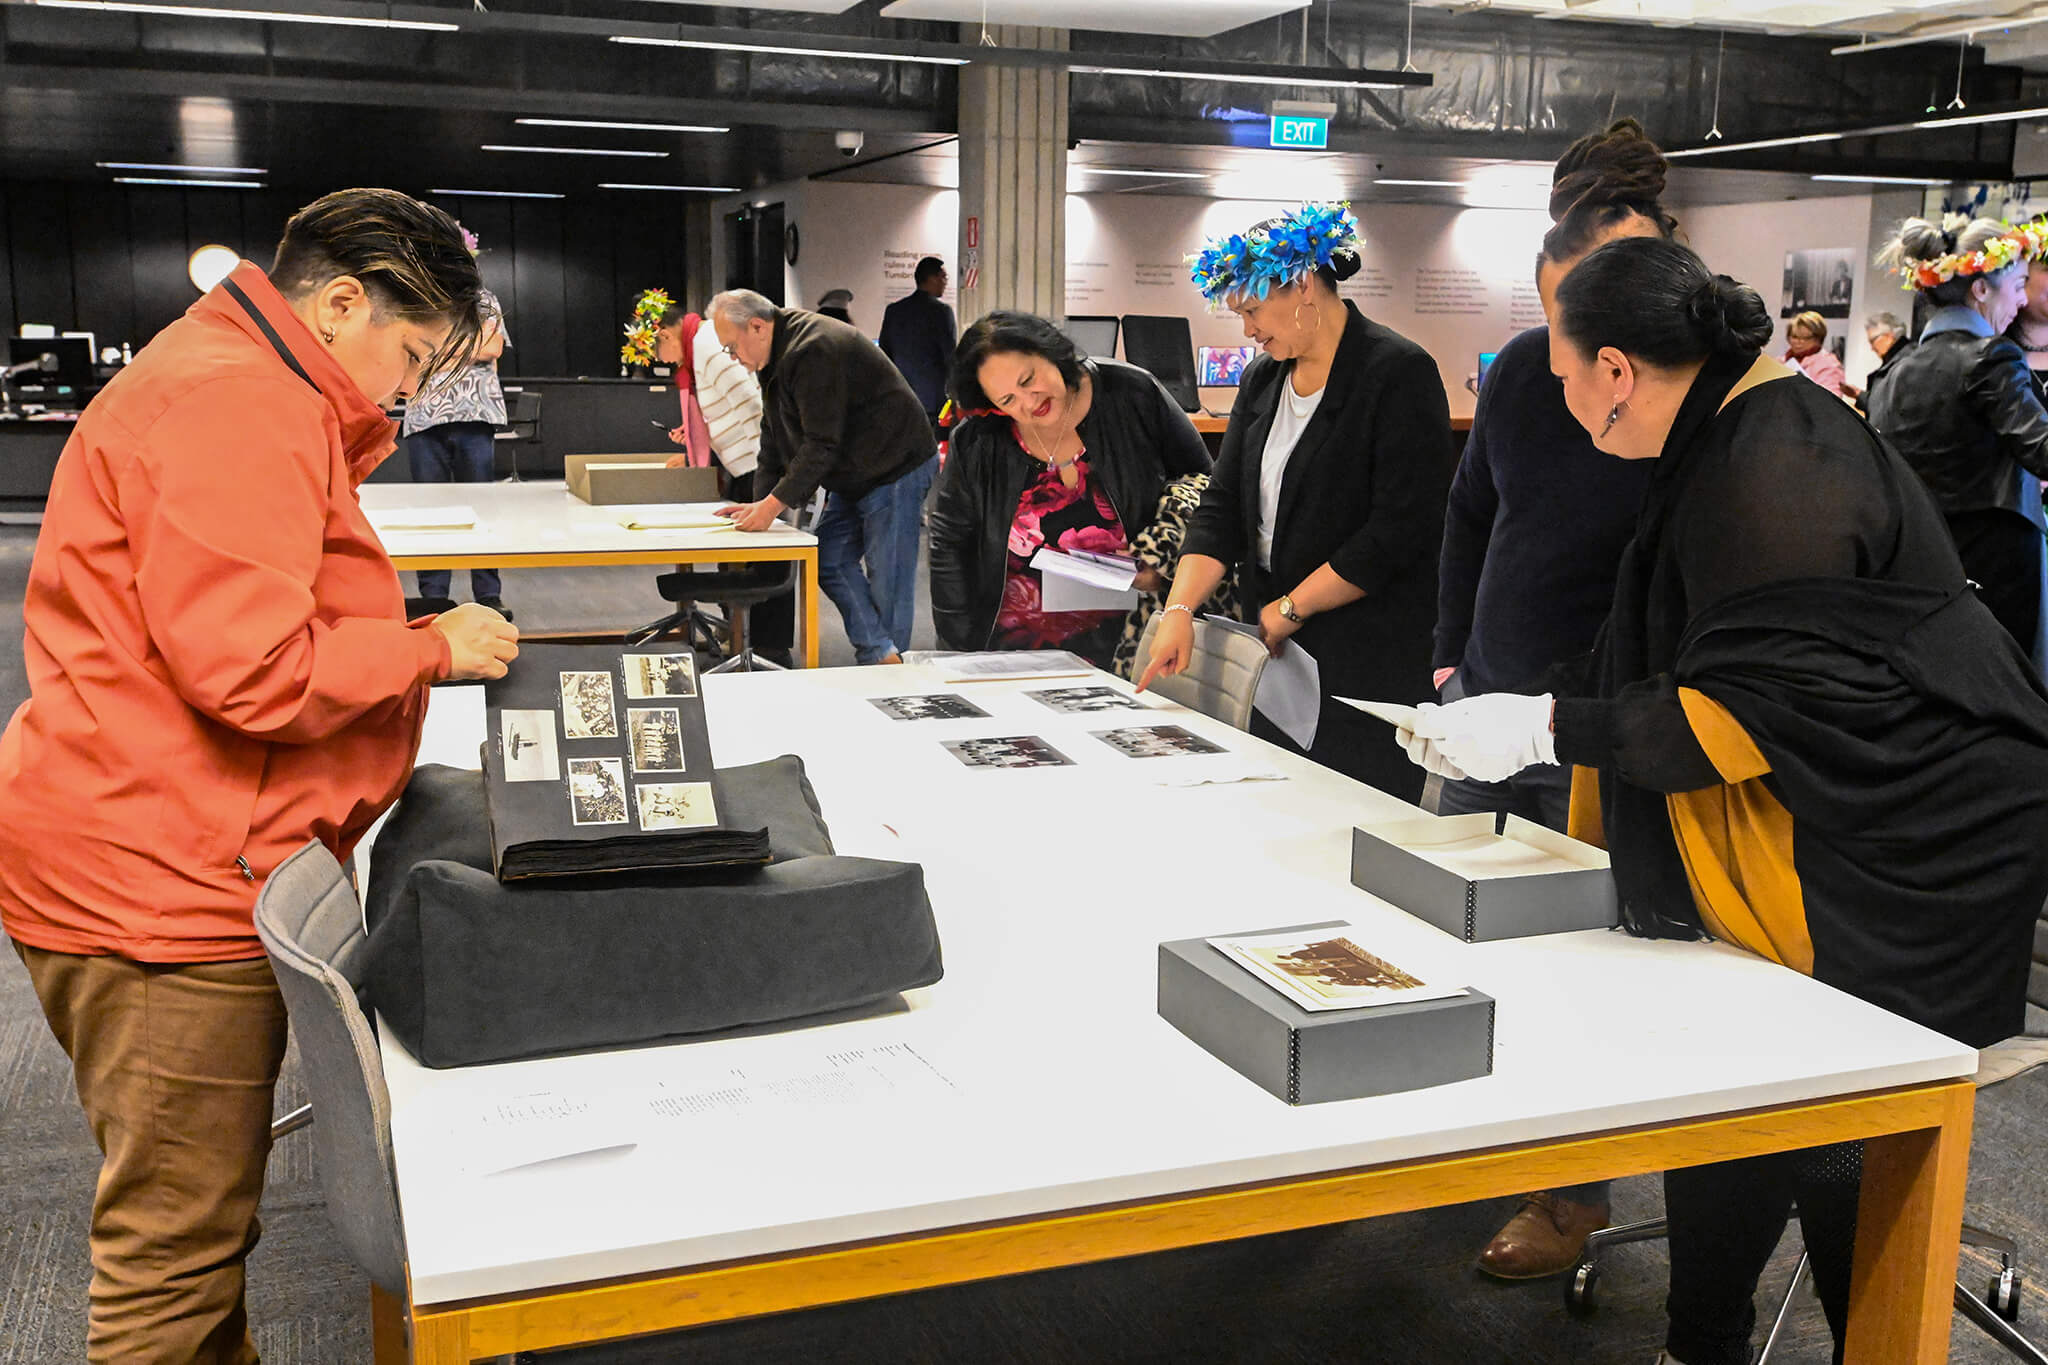 Women gathered around a table looking at photographs